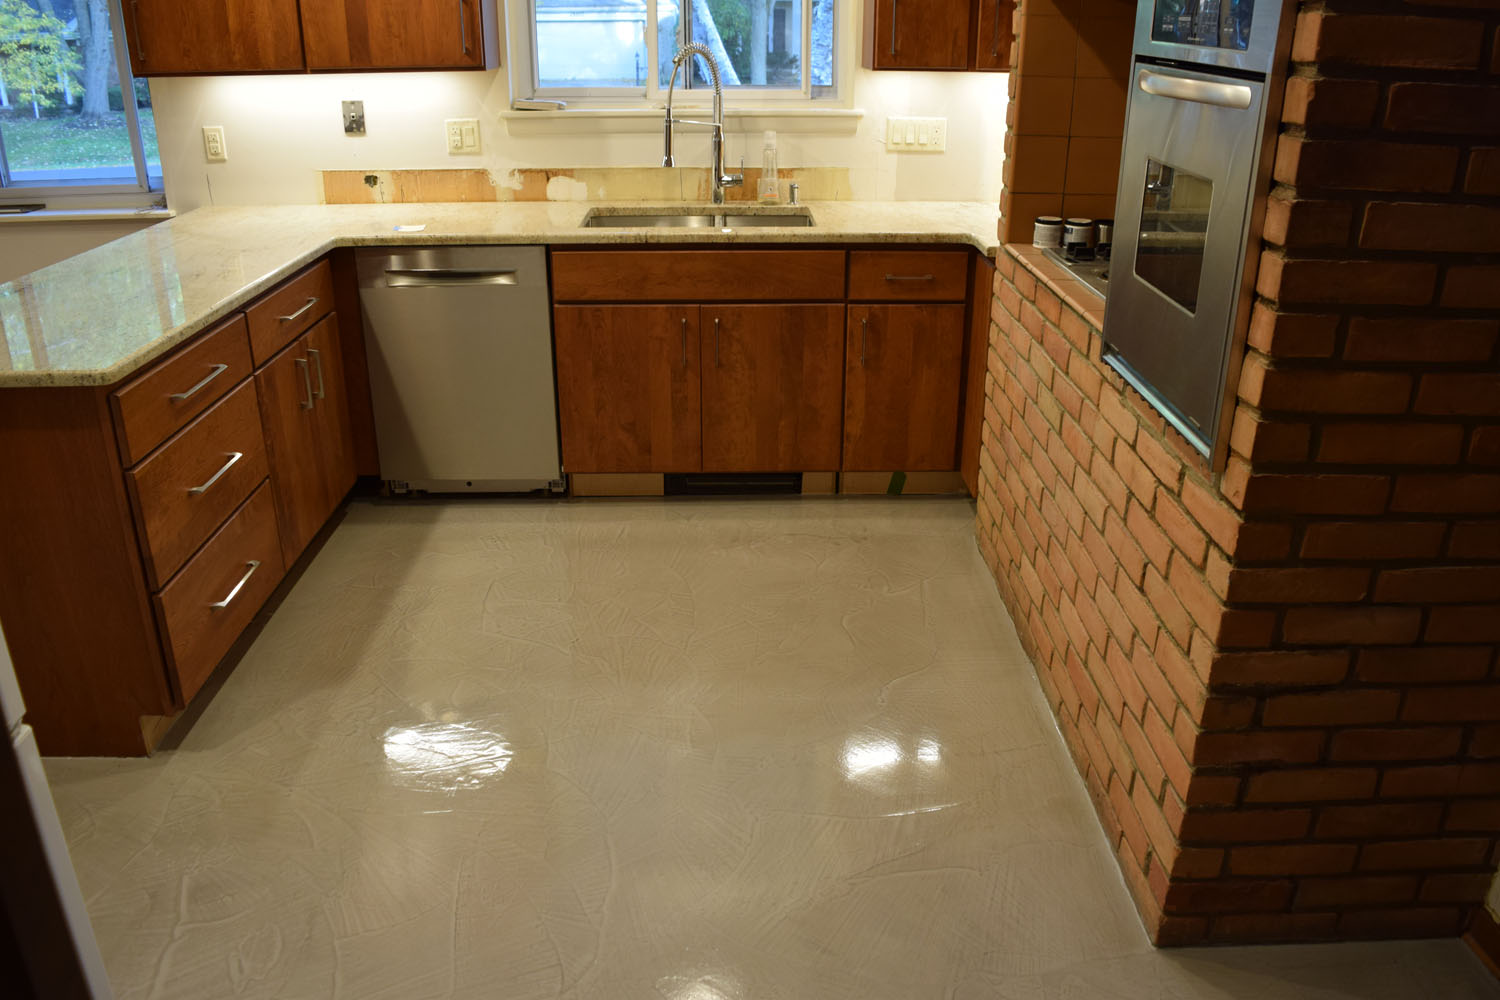 Gray Kitchen Cement Overlay Flooring.  Brickform SM Pro, Microtopping, Liquid Color and Decopoxy